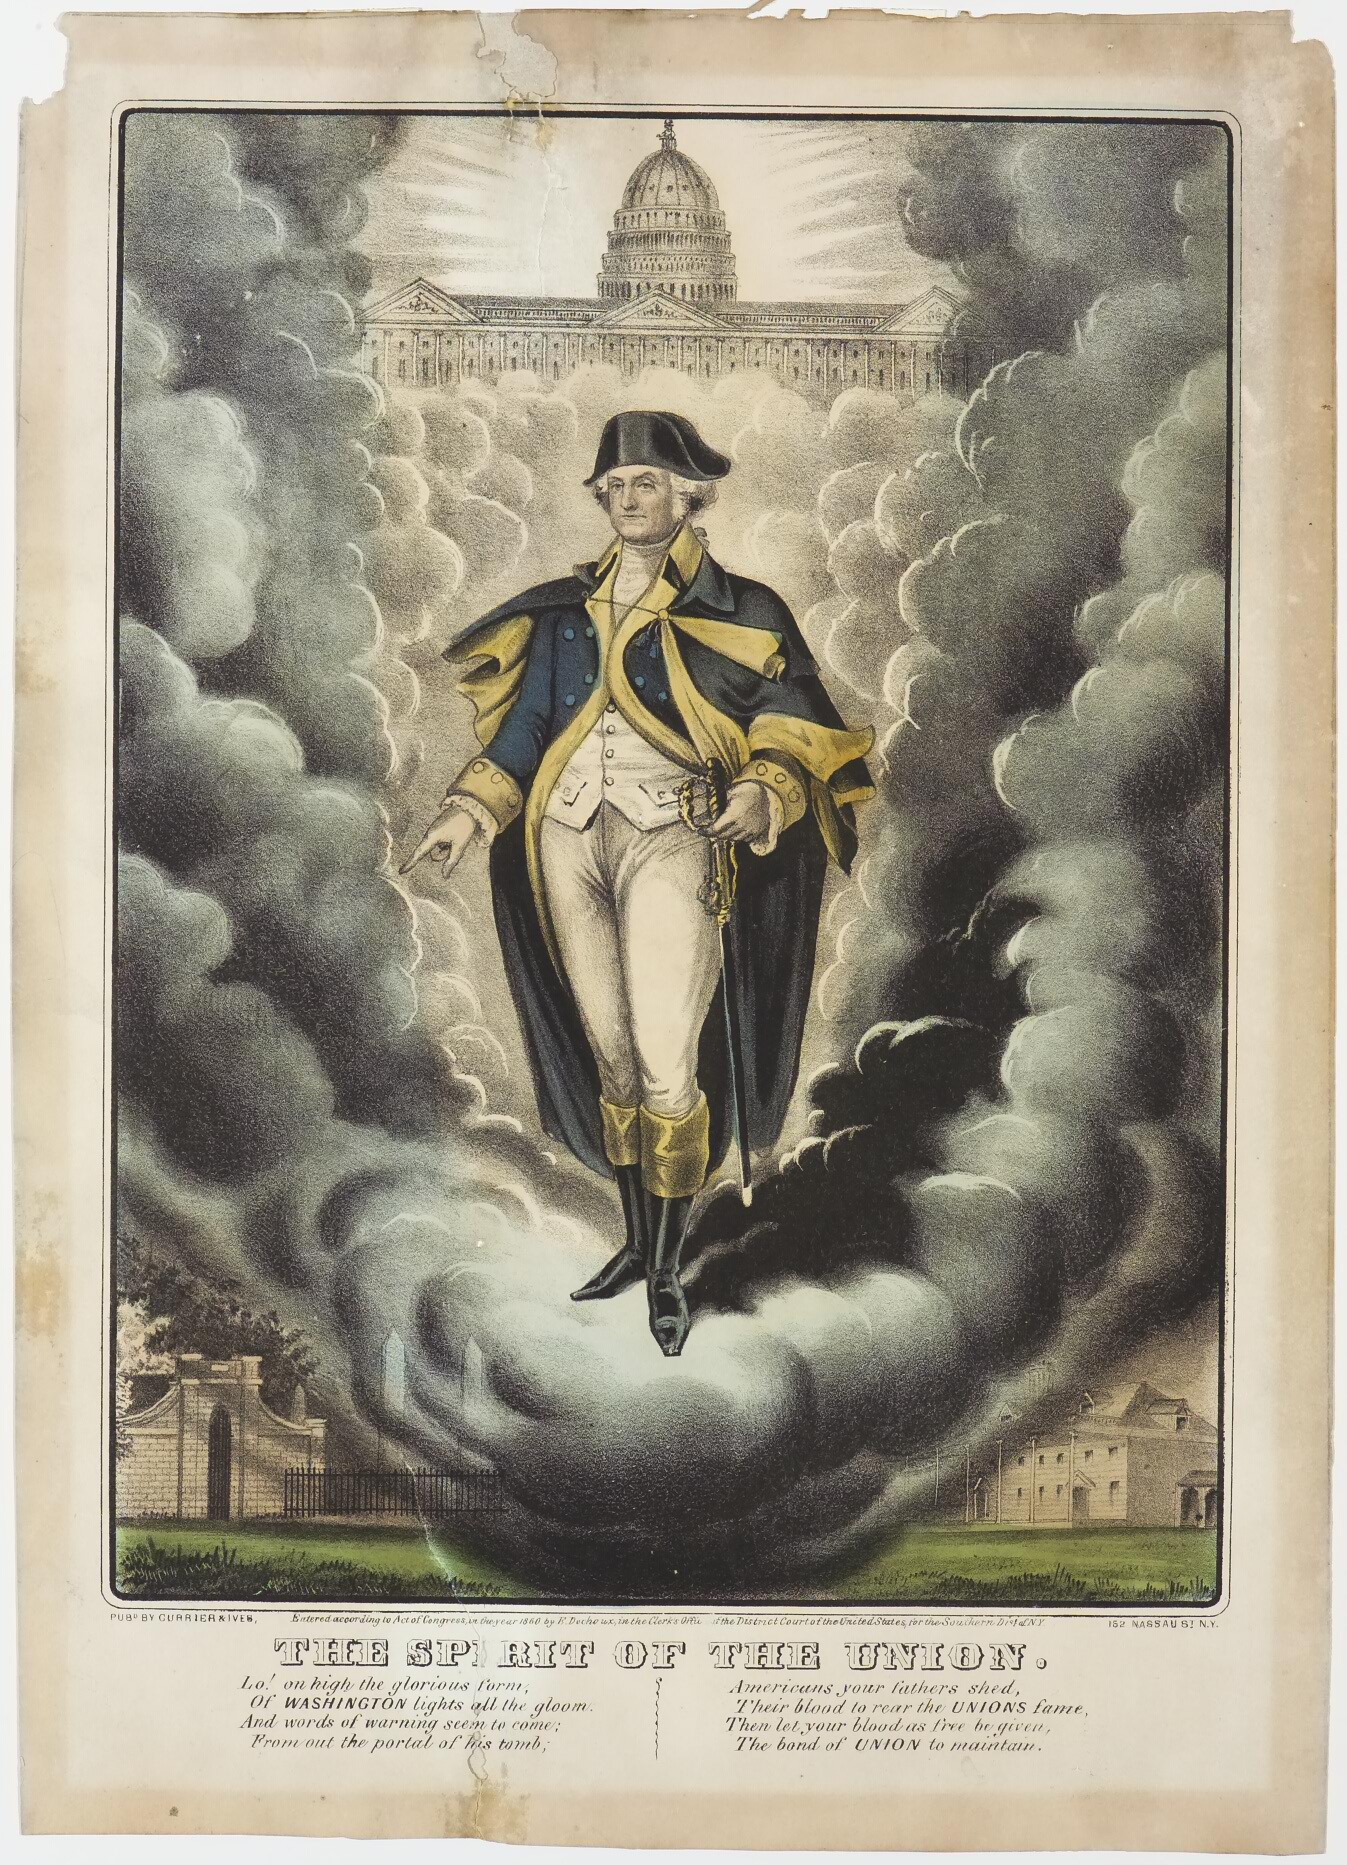 George Washington standing at center in clouds below capital building center top